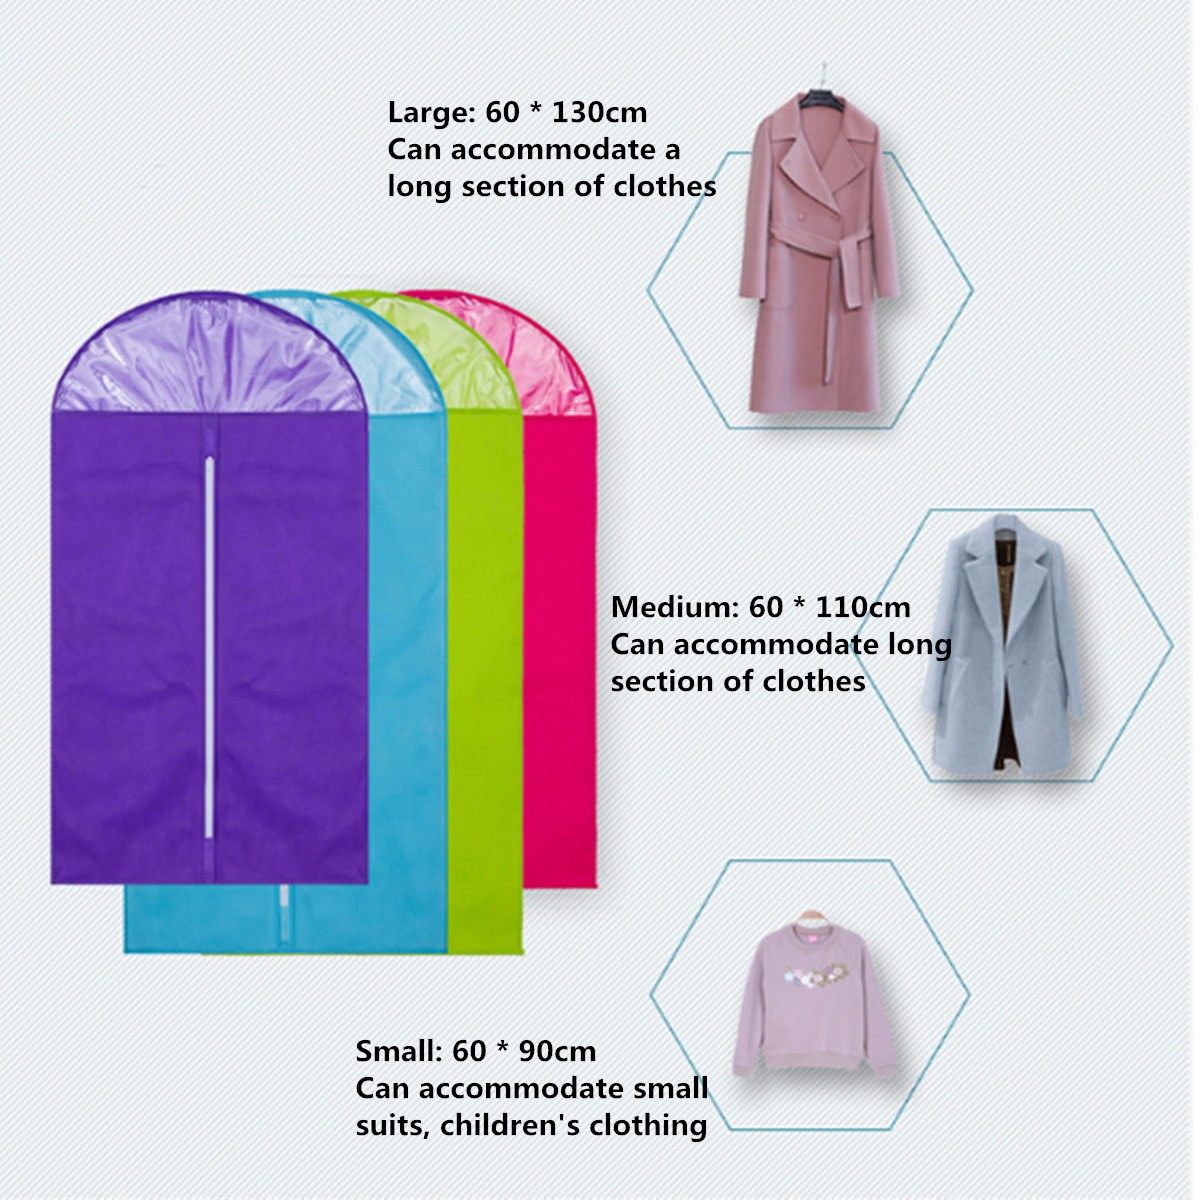 mohoo garment bag covers full zipper suit bag with clear window pack for suits pants and